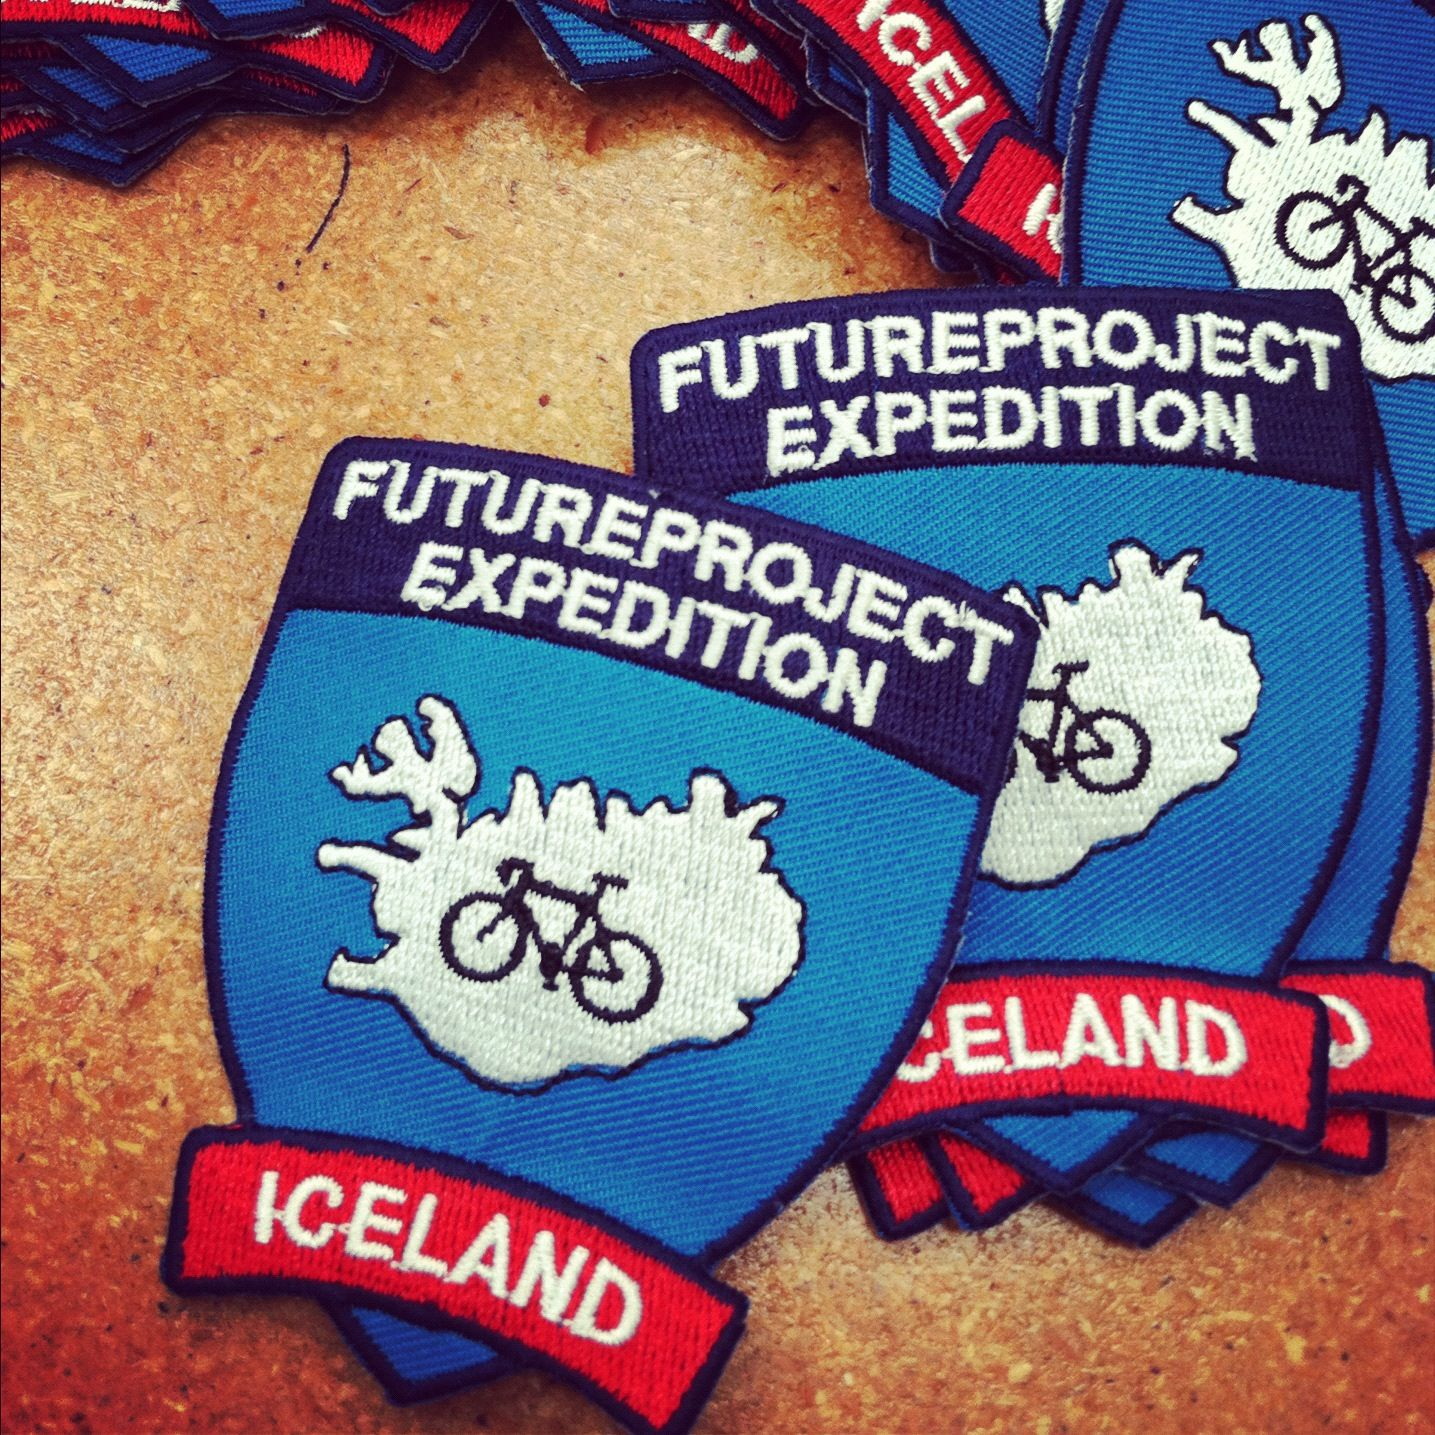 @fpExpedition patches for FPX:Iceland schwag!